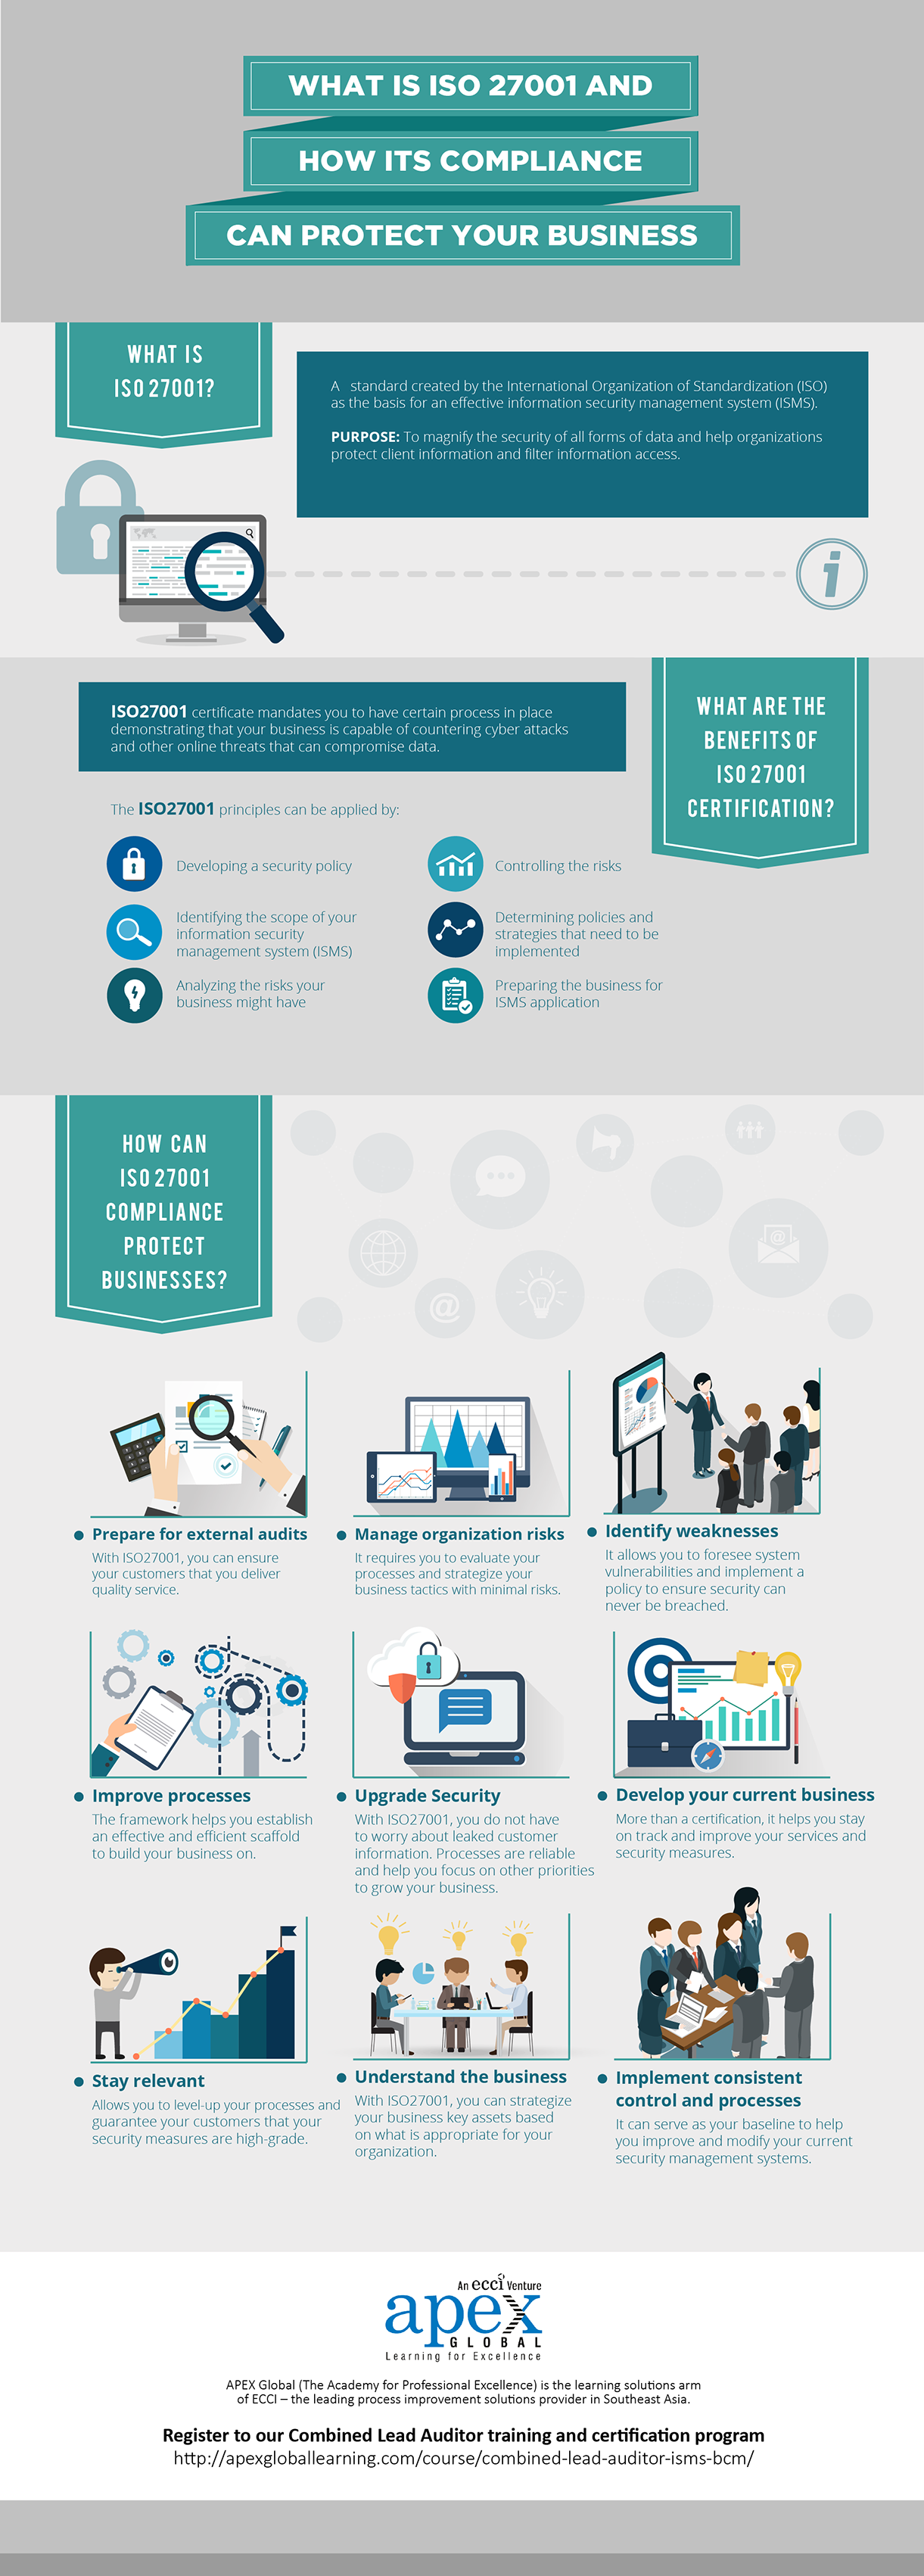 it-project-cost-management-guide-5-tips-to-success-infographic-01-1